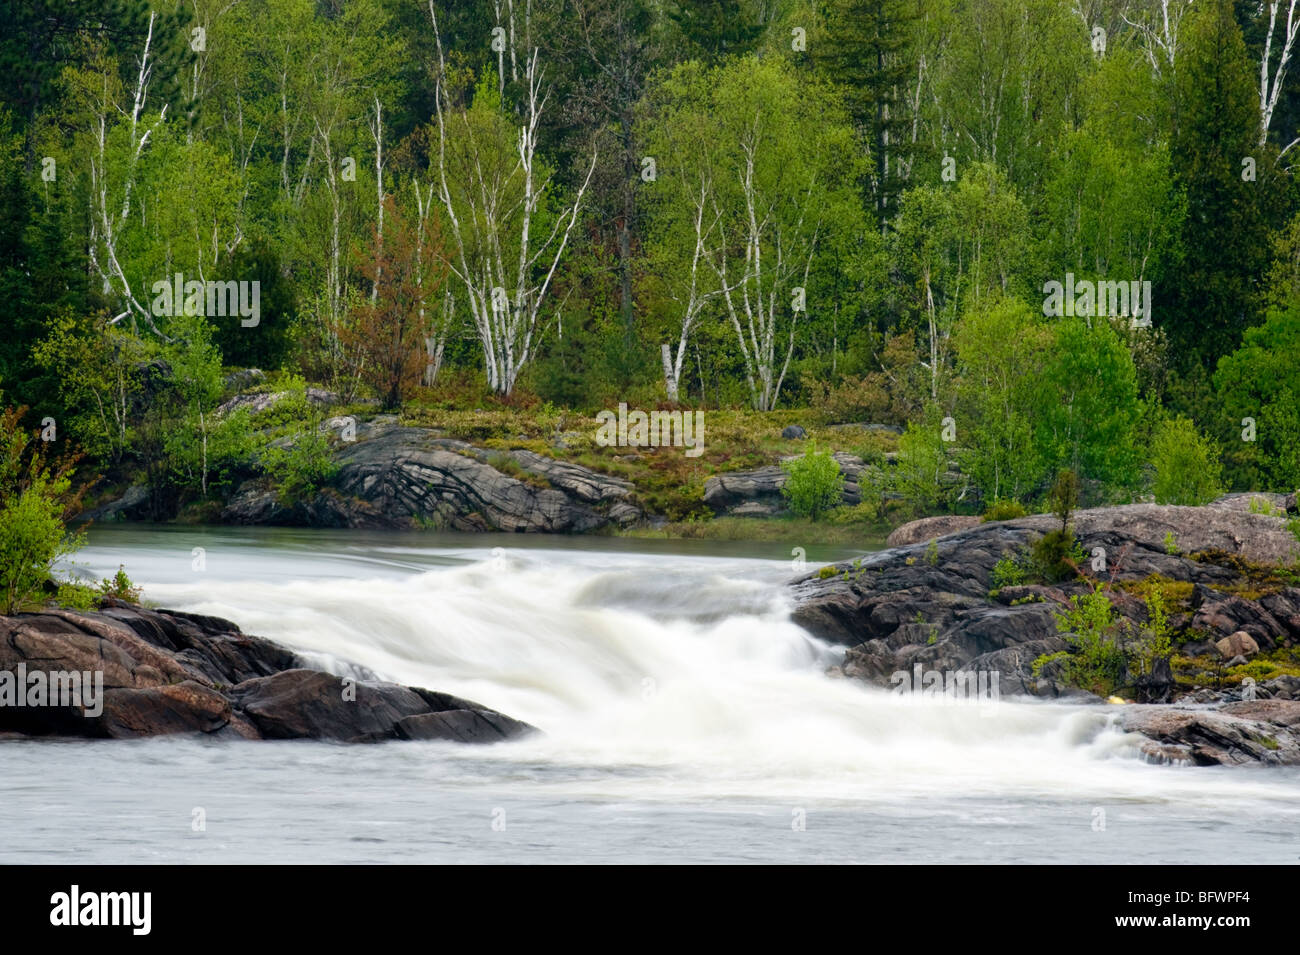 Waterfall and rapids on the Wanapitei River in spring, Greater Sudbury, Ontario, Canada - Stock Image